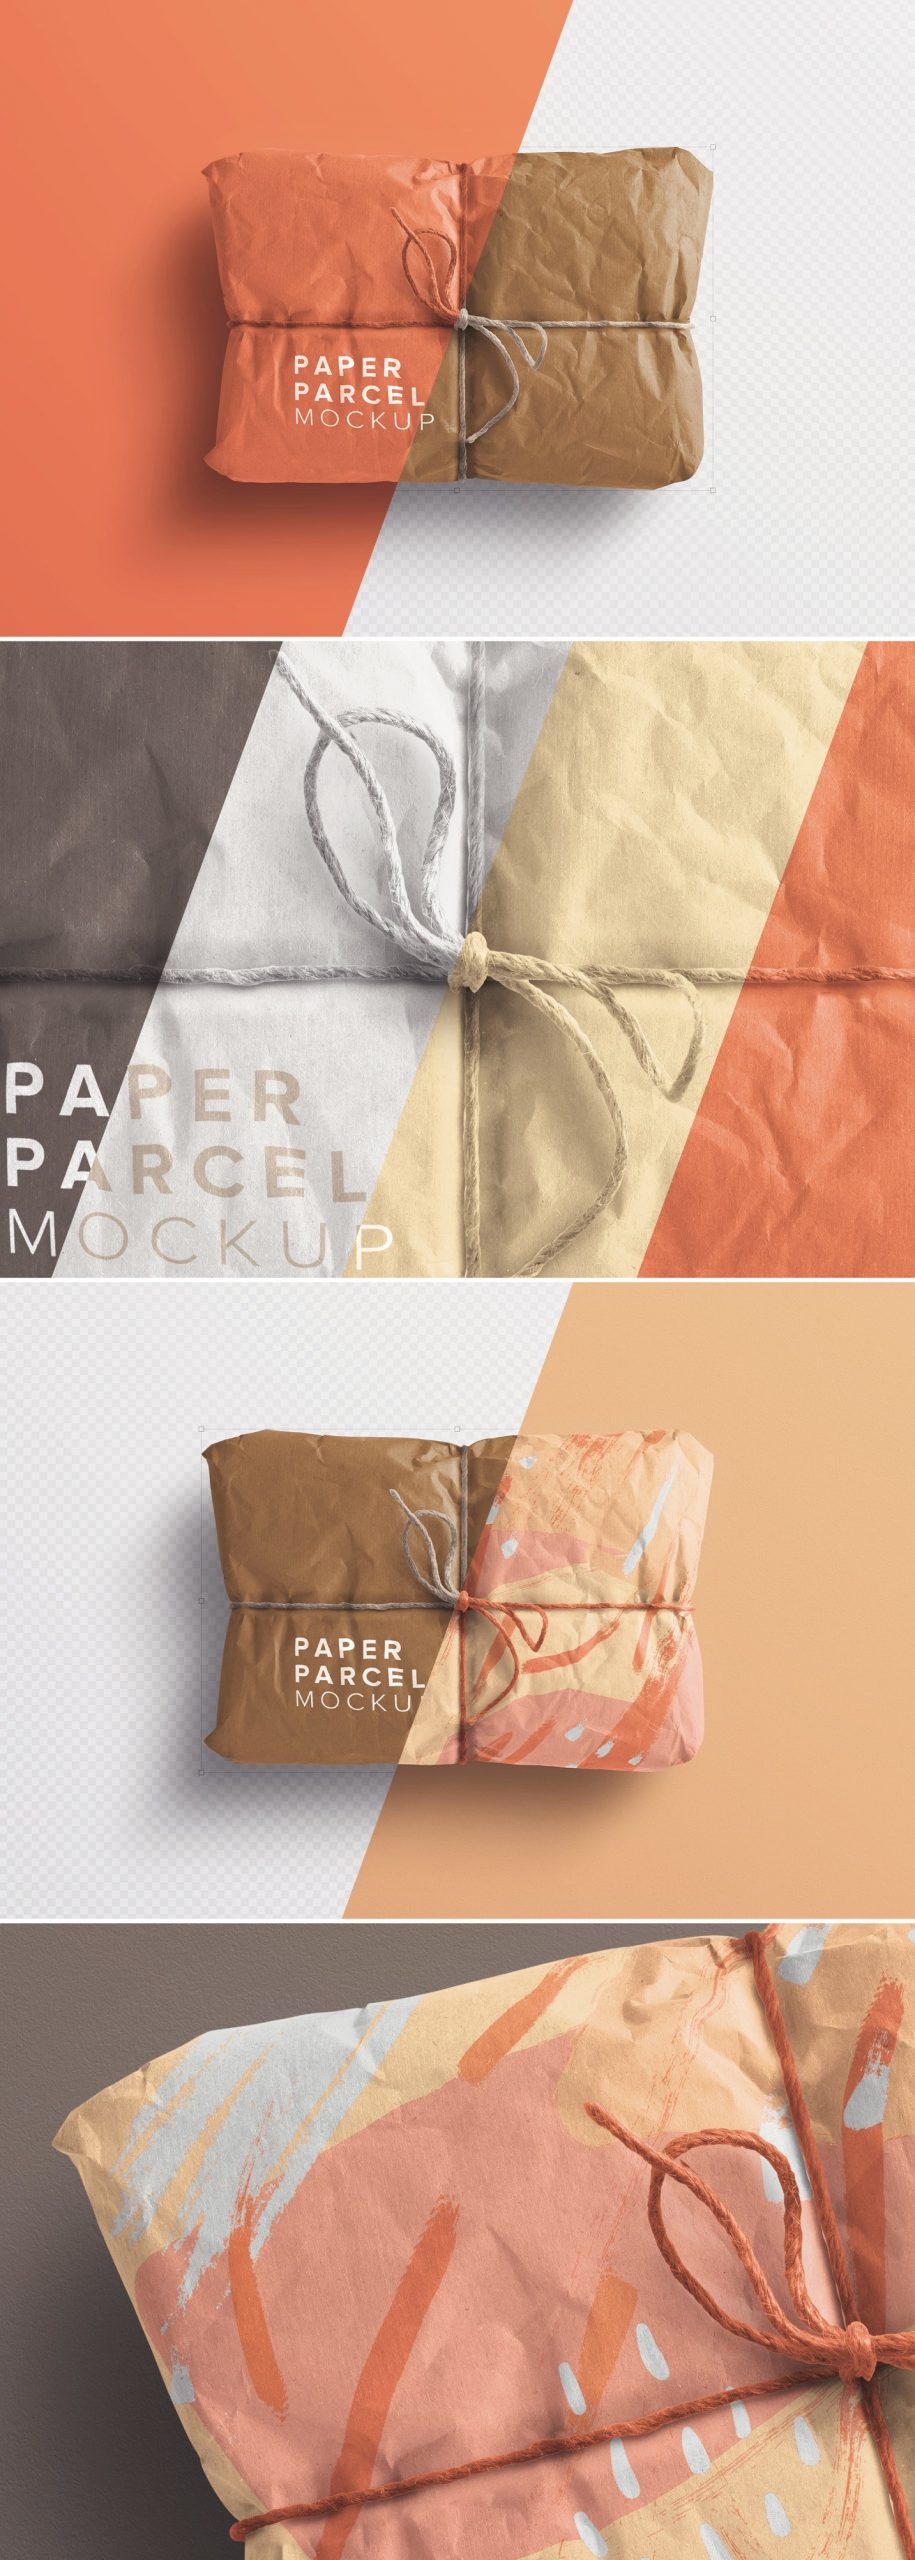 paper parcel mockup preview 1 scaled